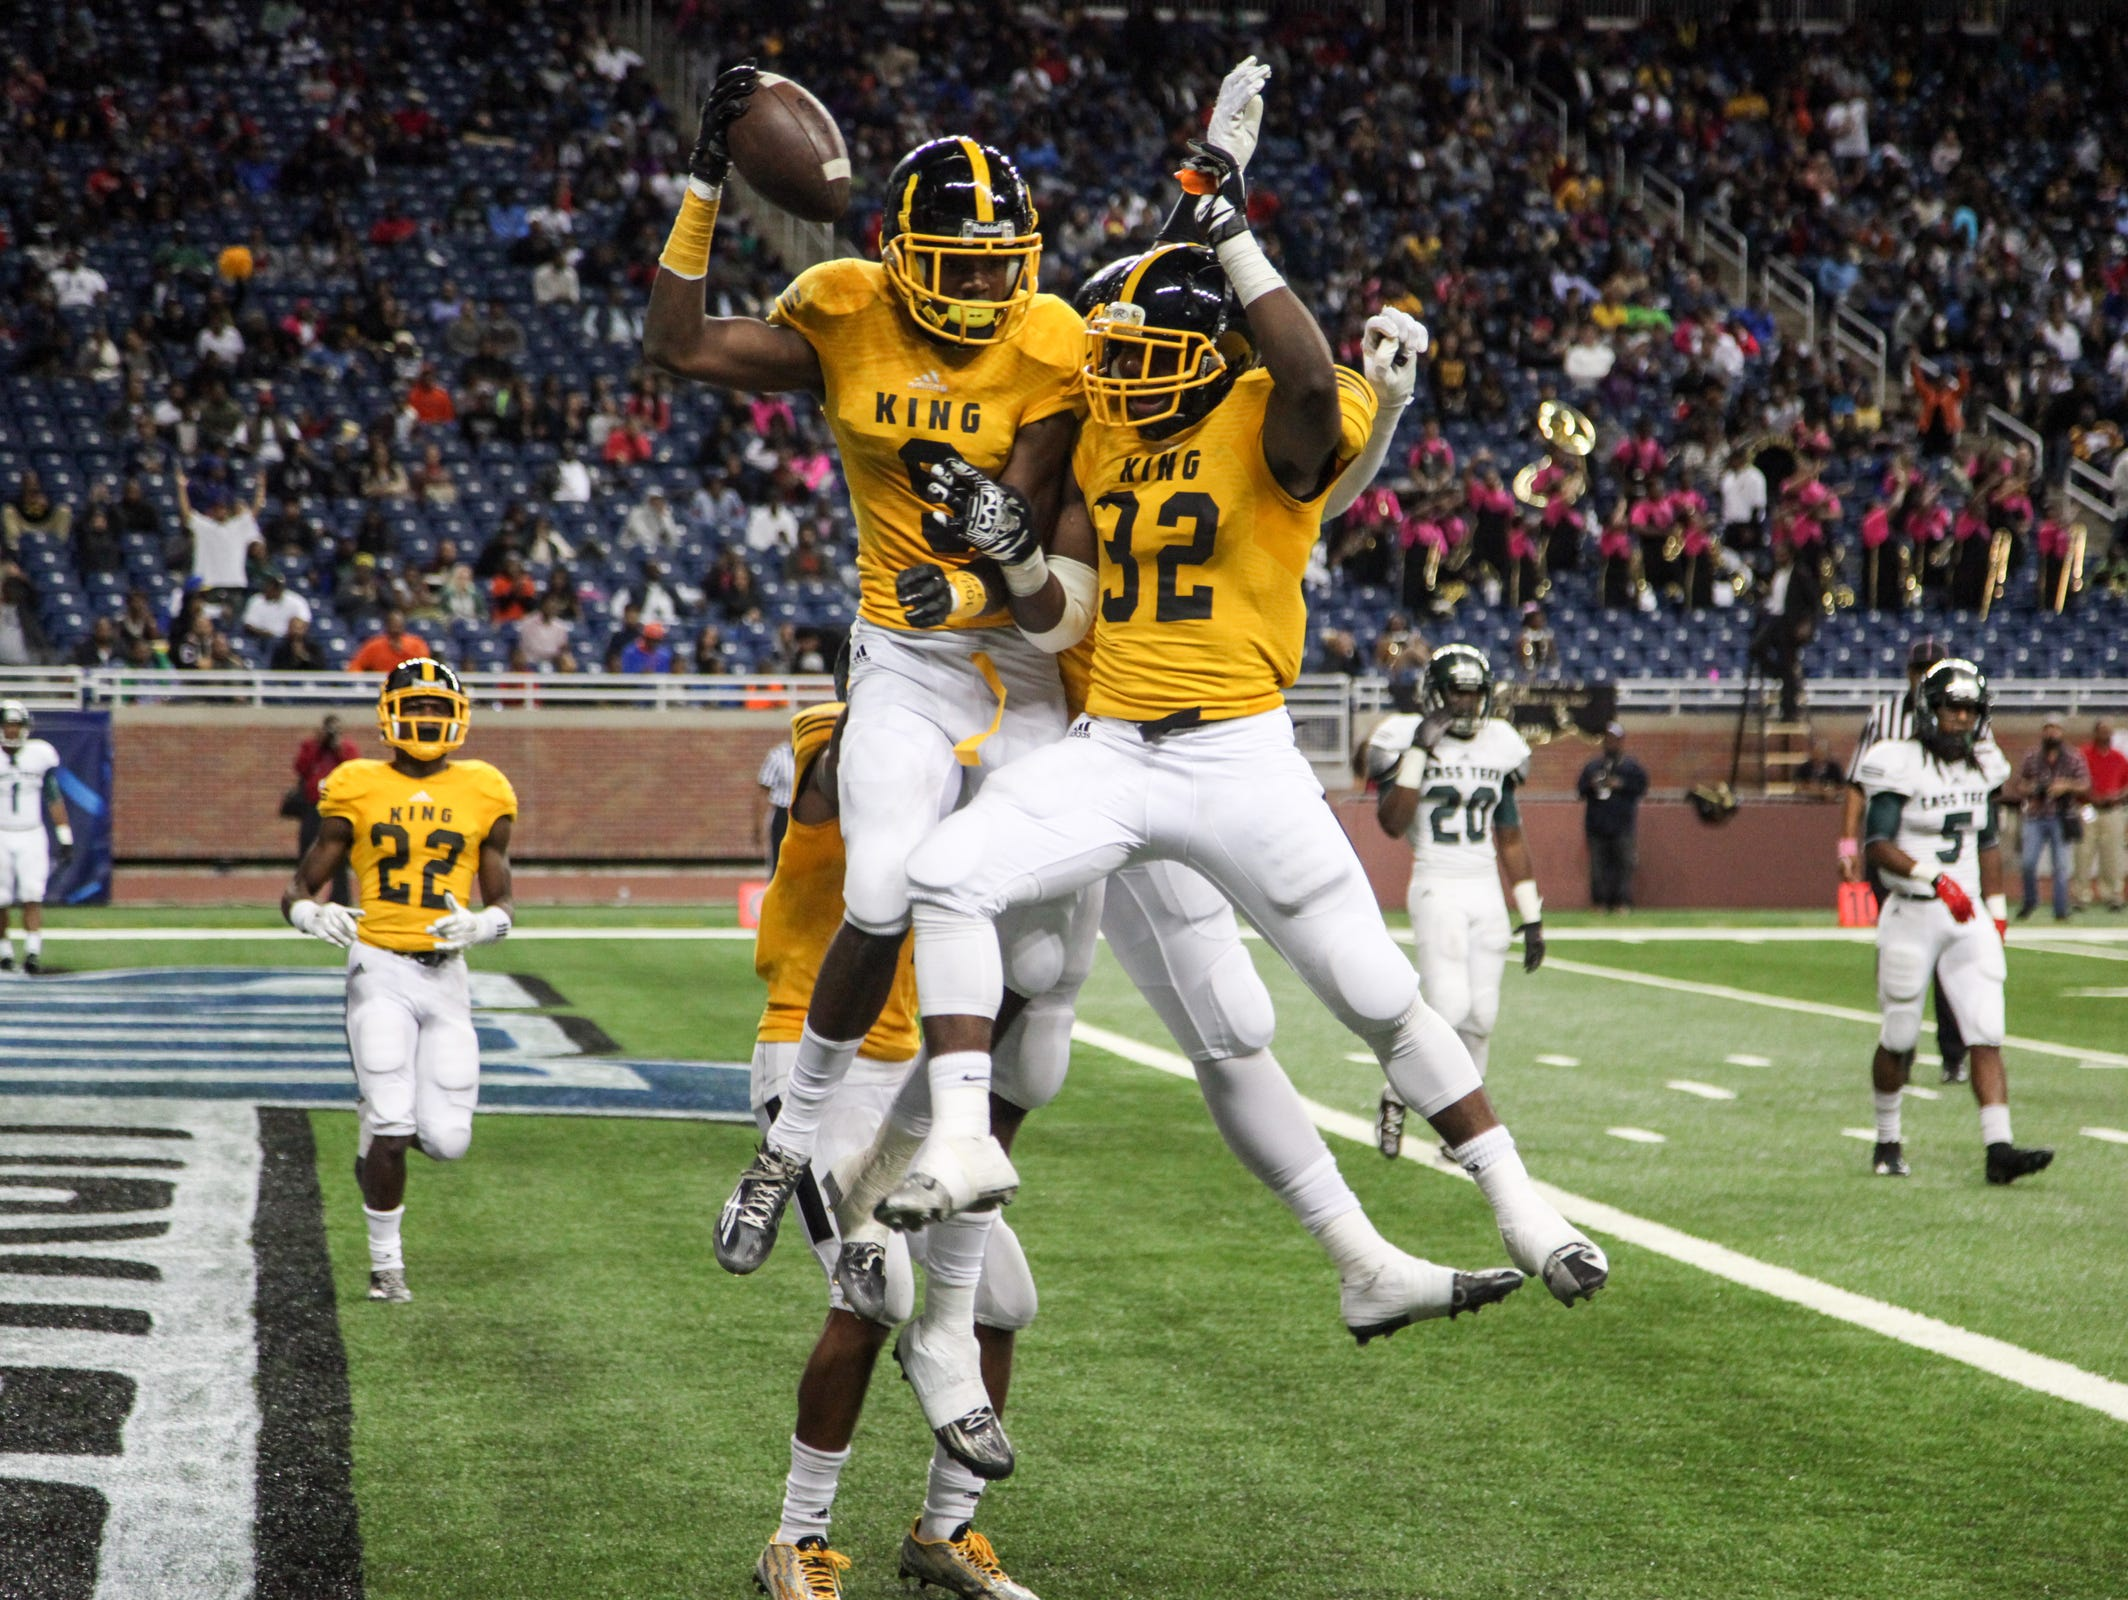 M.L. King Crusaders Donnie Croley (9) celebtrates with Martell Pettaway (32) after scoring a touchdown, during Division I Detroit Public School League 2015 Football Championships at Ford Field In Detroit, on Friday, Oct. 23, 2015.